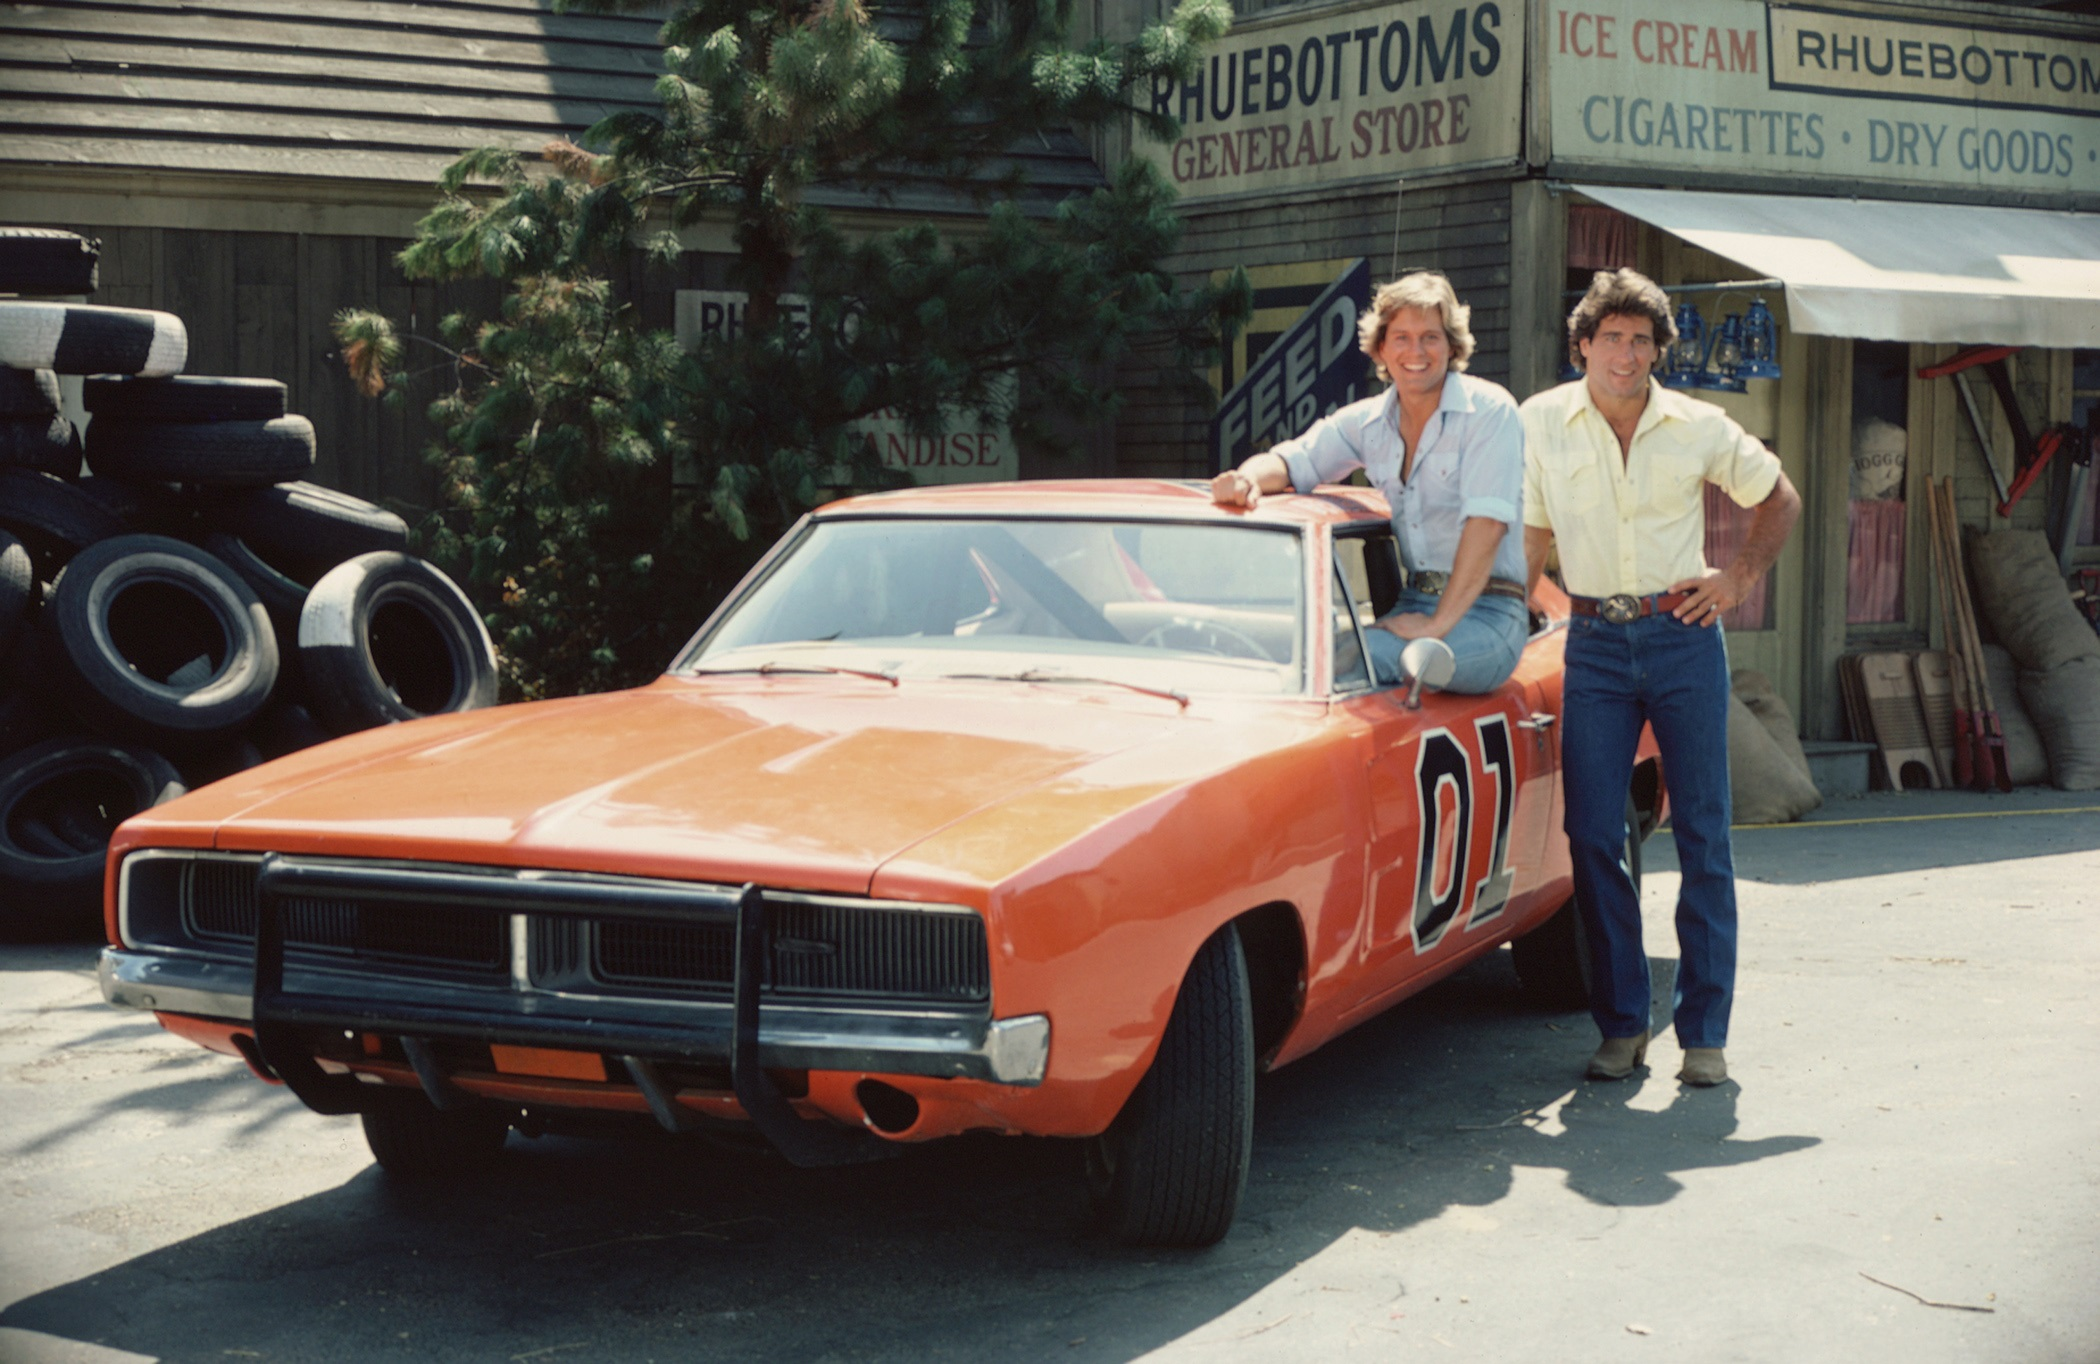 Byron Cherry and Christopher Mayer pose with the iconic The Dukes of Hazzard car